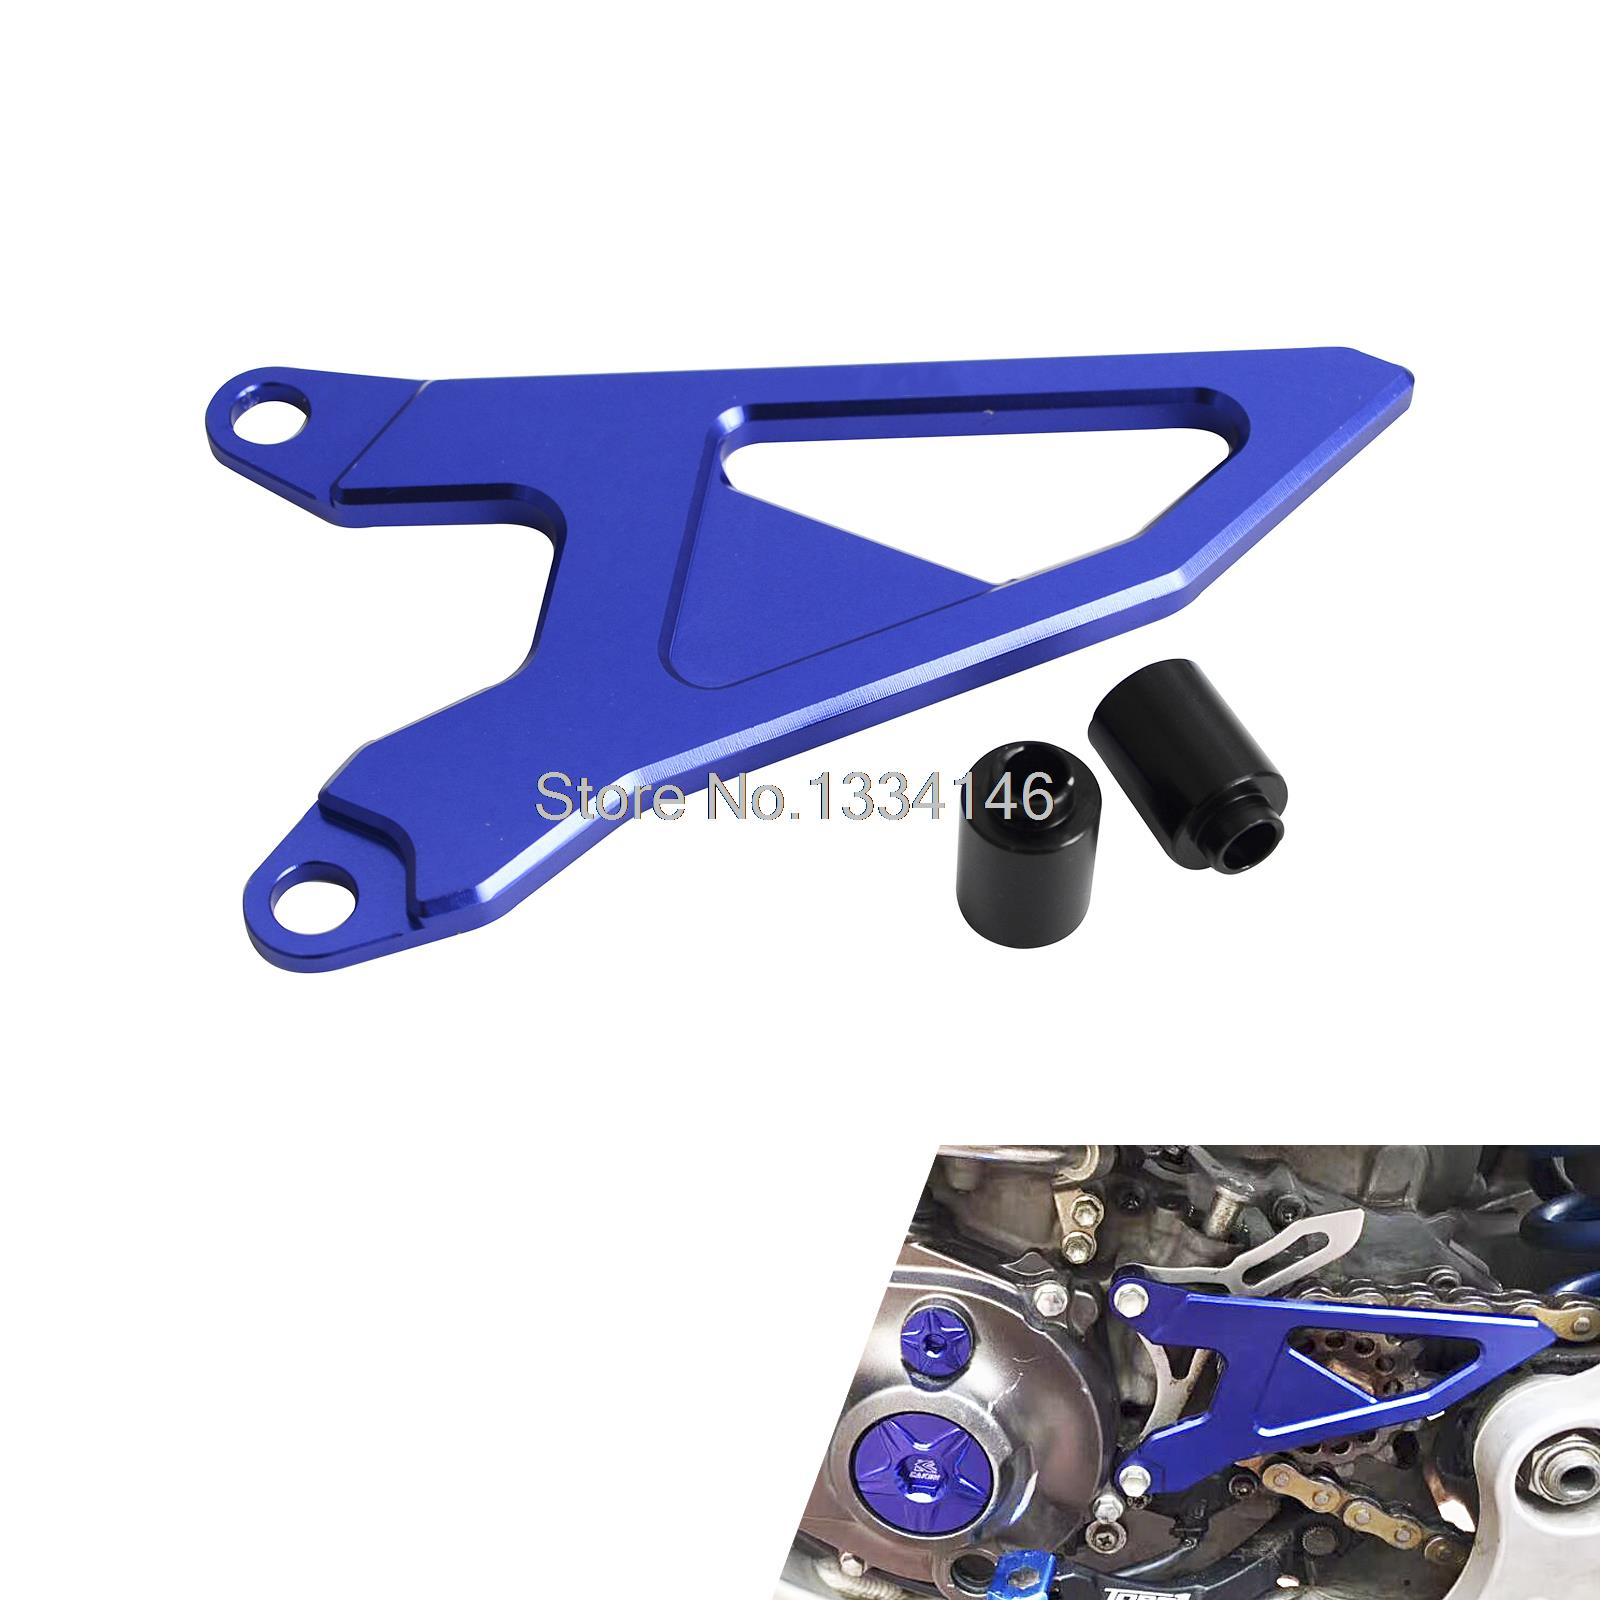 CNC Billet Aluminum Front Sprocket Cover For Yamaha YZ250F YZ450F 2014 2015 2016<br>